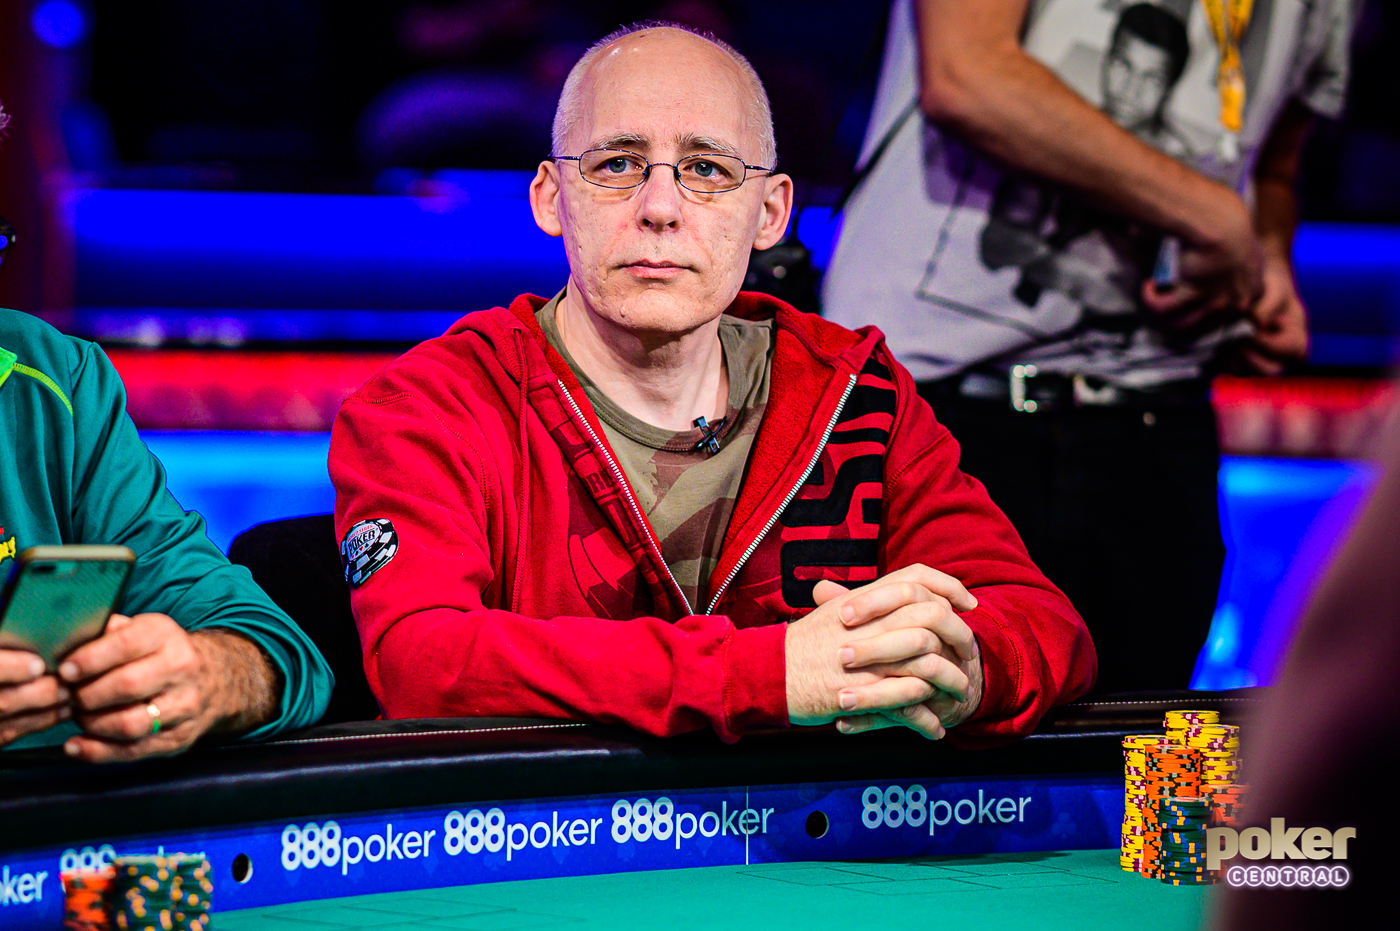 Talal Shakerchi during the 2019 World Series of Poker.